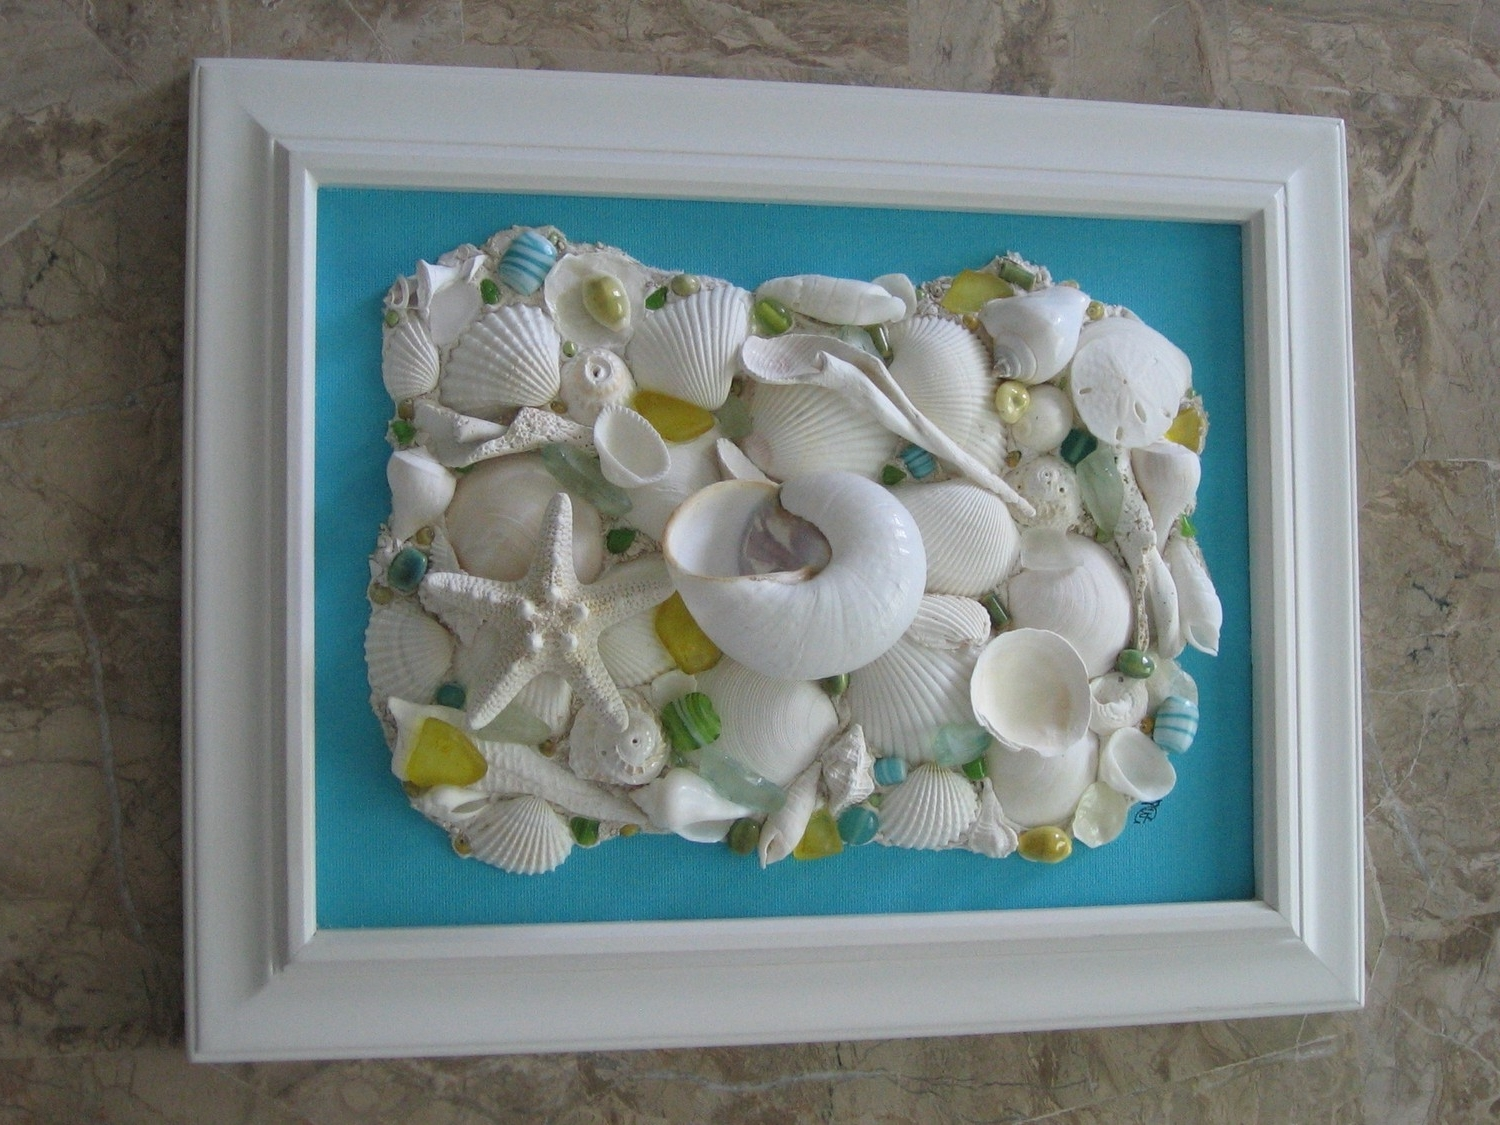 Beautiful Habitat: Framed Objects As Wall Art {Guest Post} Pertaining To Well Known Wall Art With Seashells (View 7 of 15)